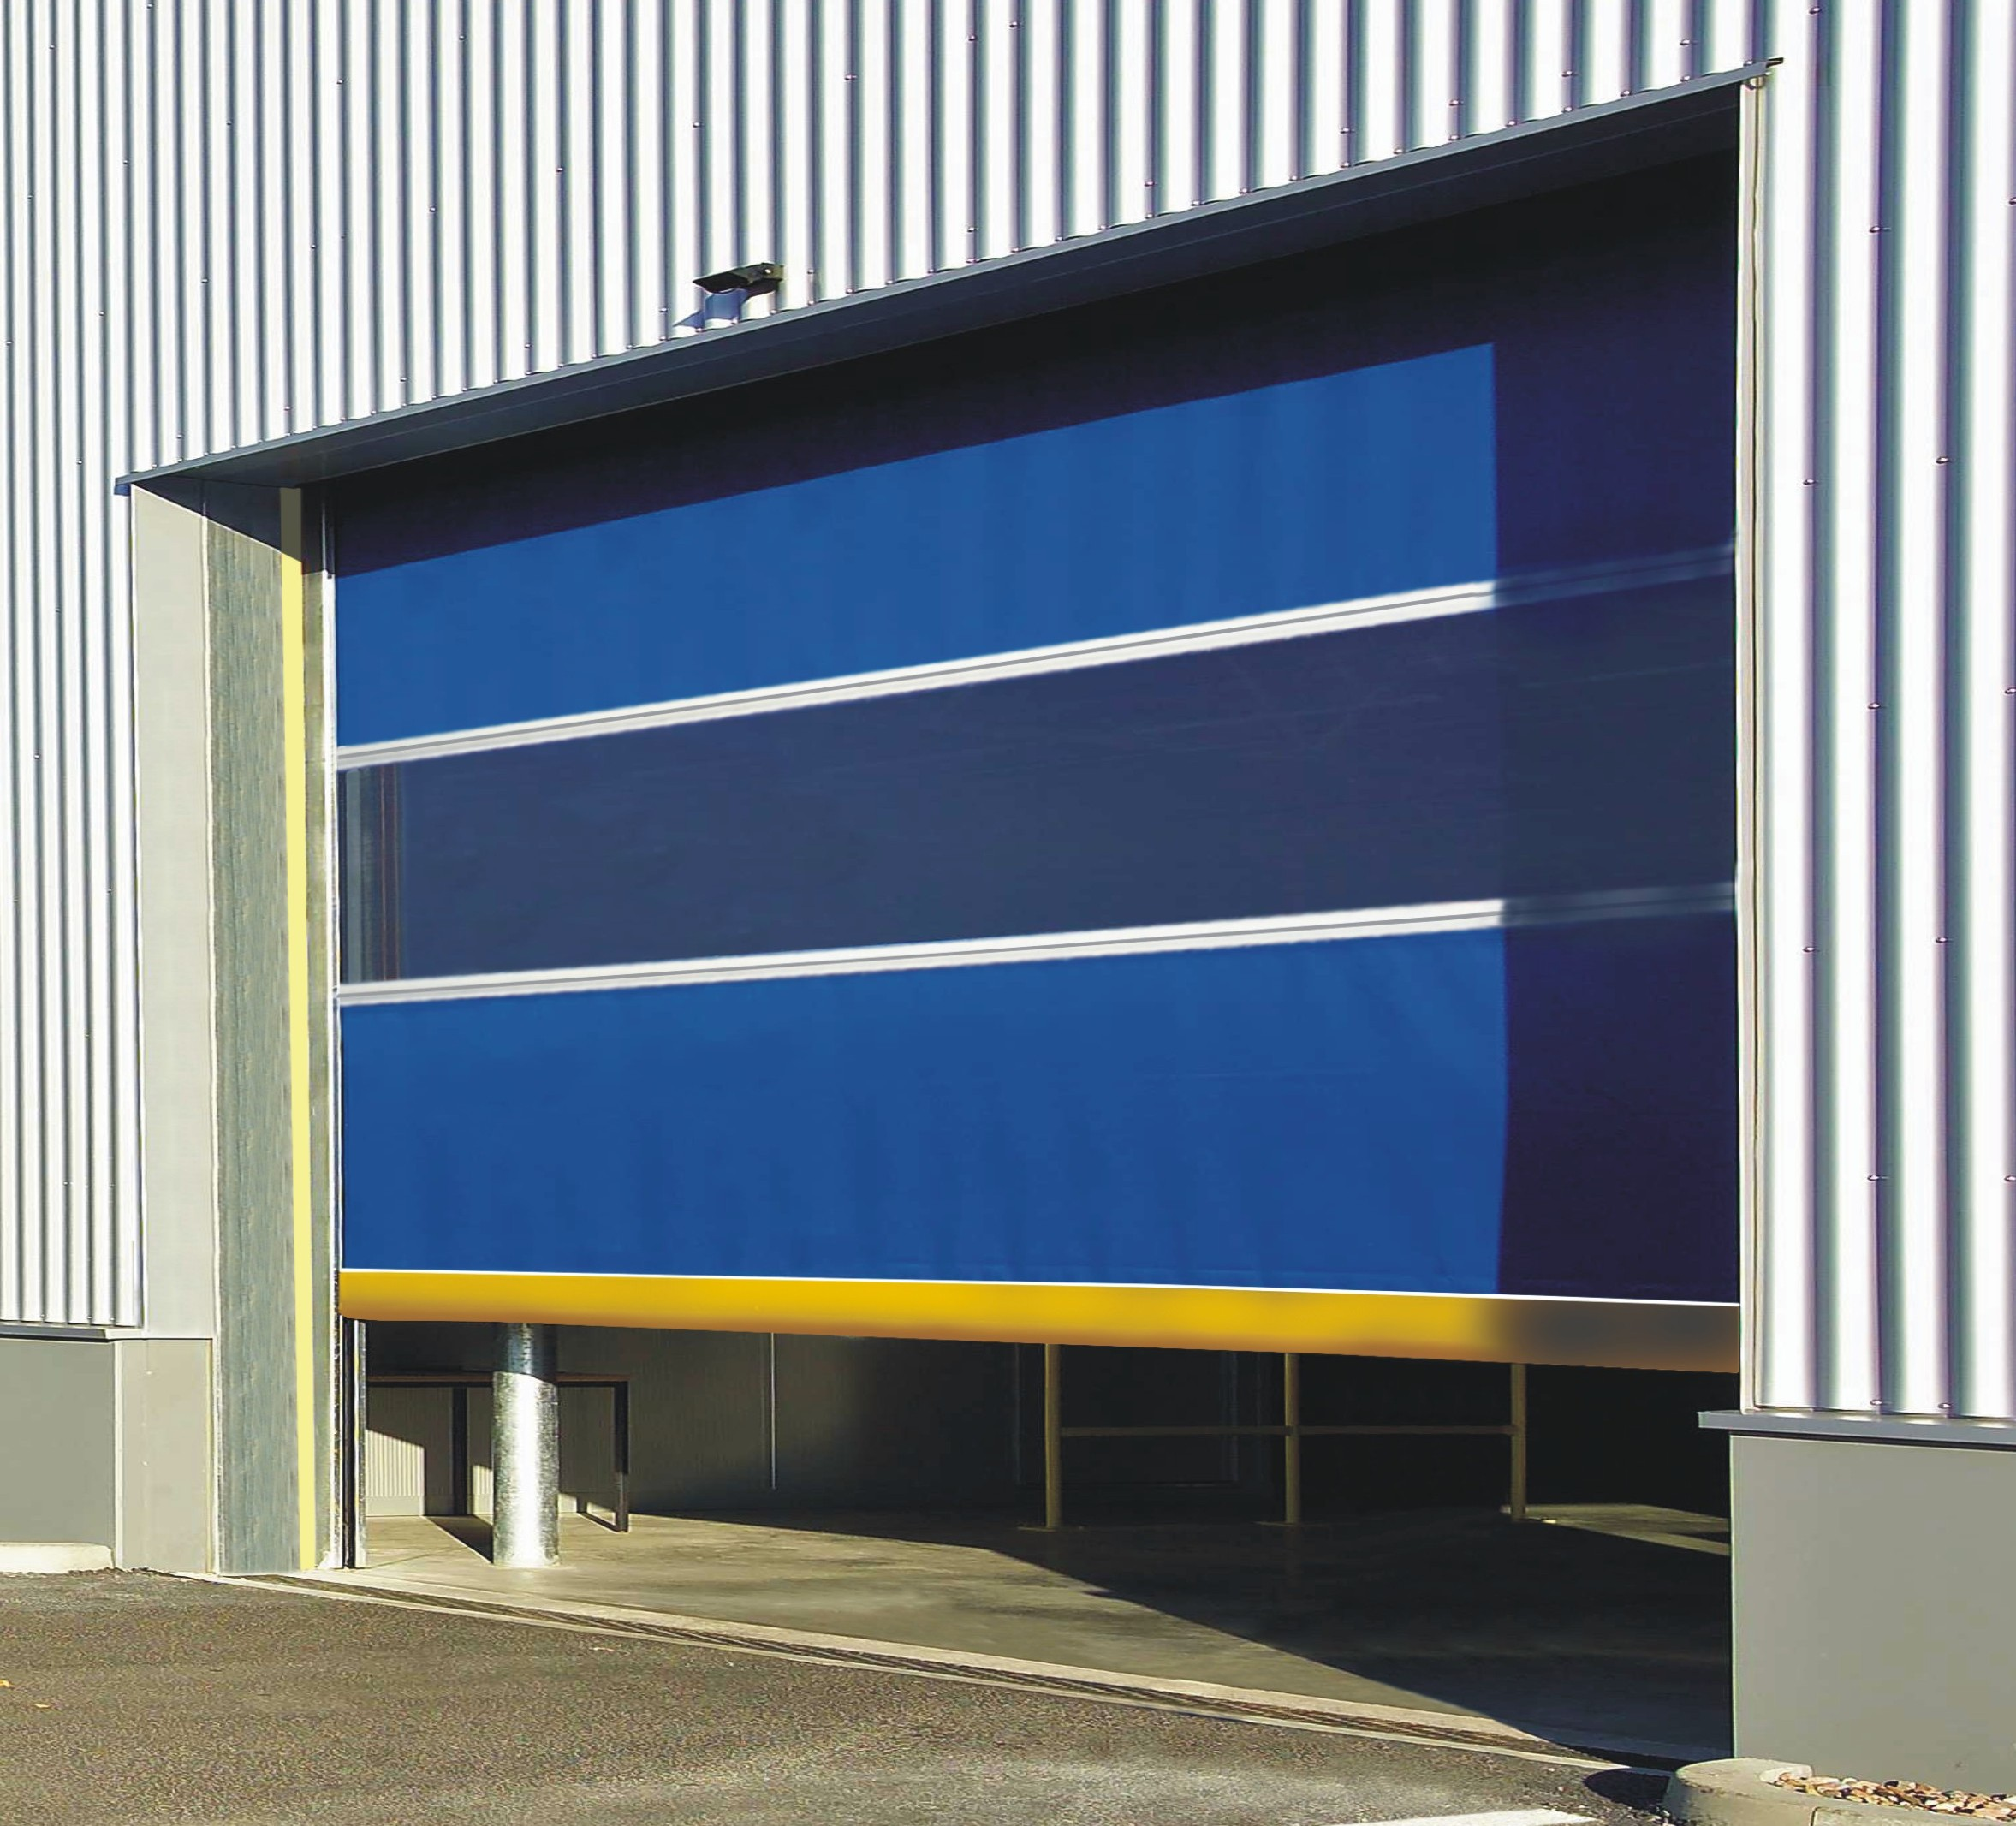 hiSpeed1 & High Speed Doors - Ru0026S Installation and Repair Services pezcame.com